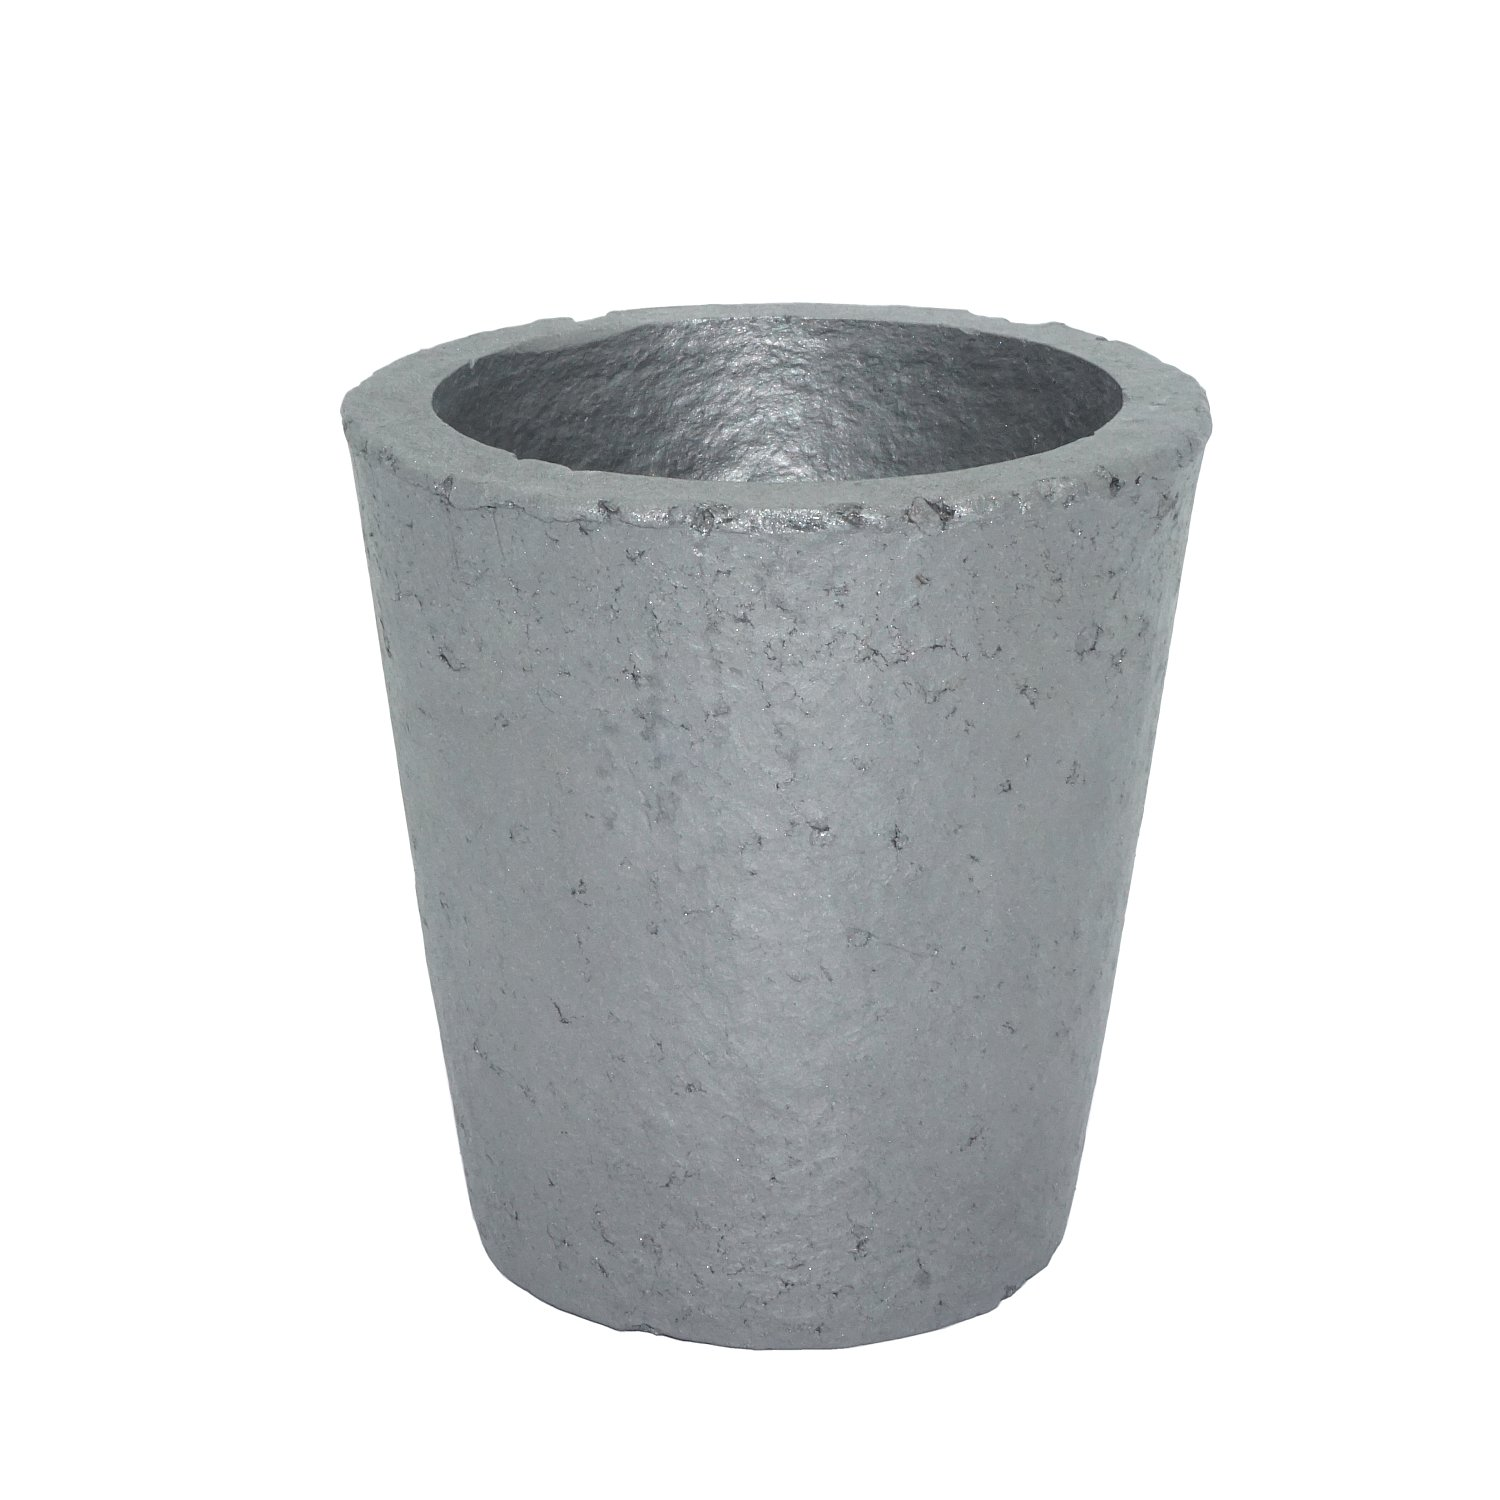 4# Foundry Silicon Carbide Graphite Crucibles Cup Furnace Torch Melting Casting Refining Gold Silver Copper Brass Aluminum for 3.5KG Copper or 1.2KG Aluminum